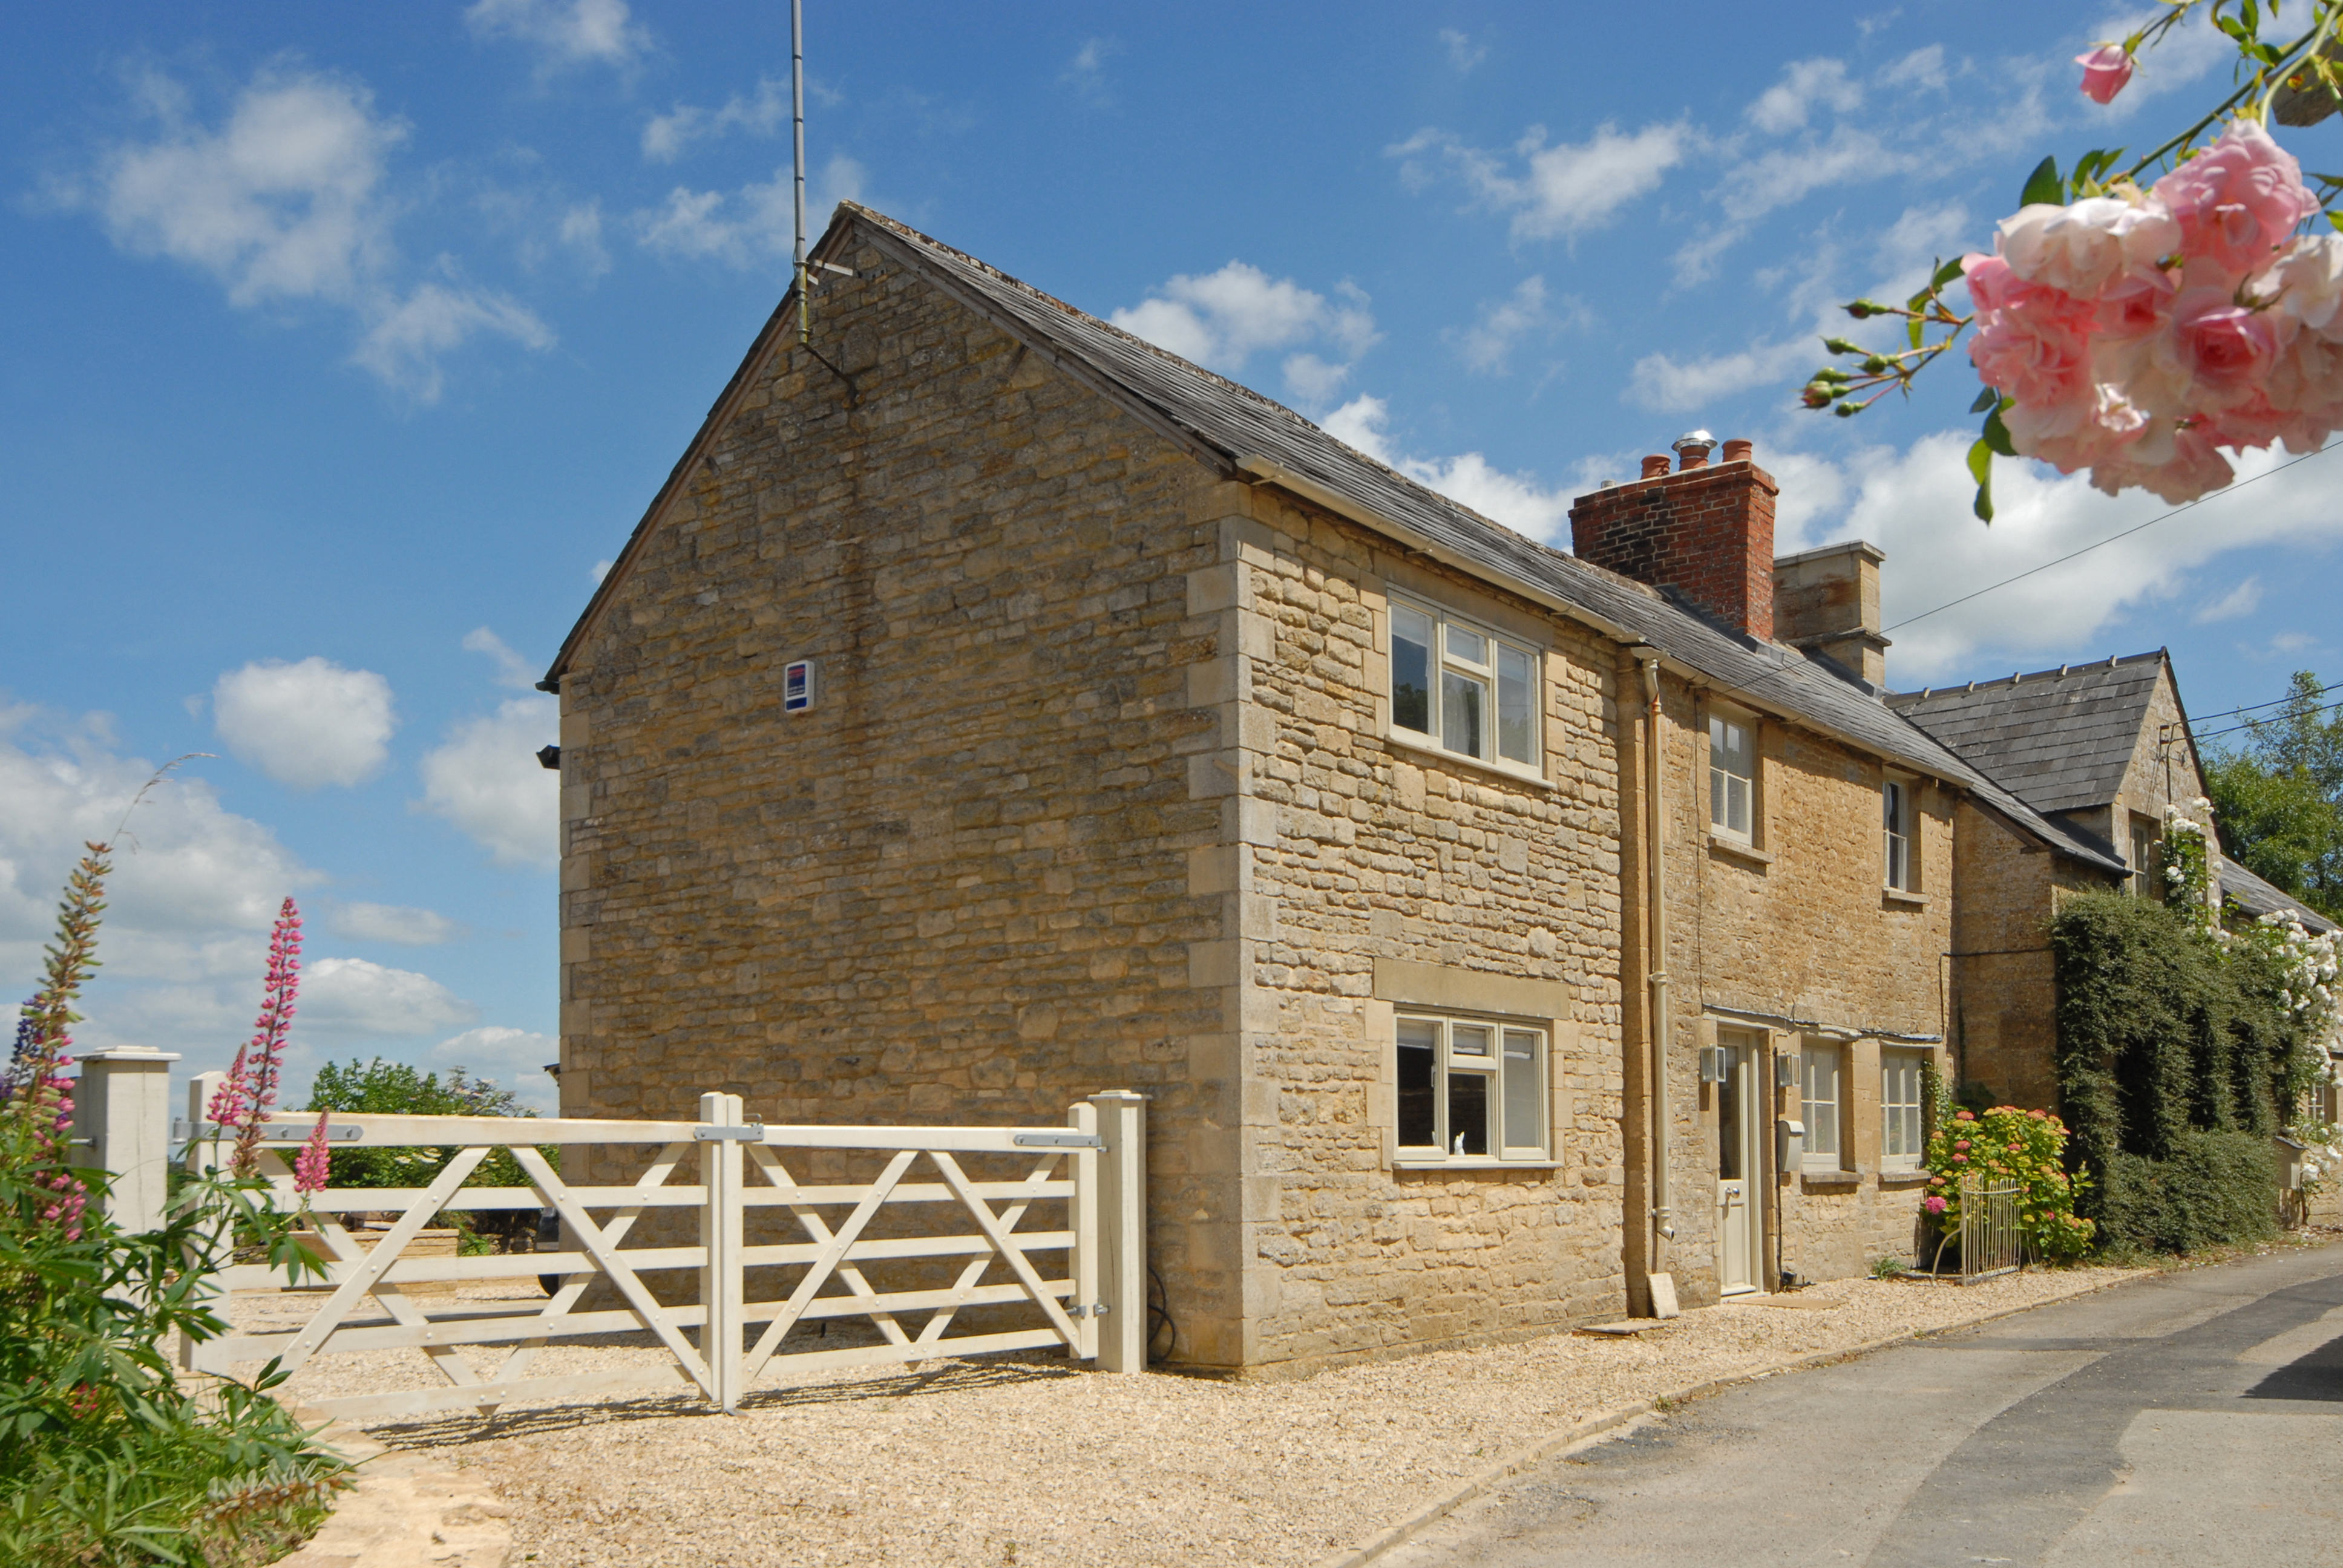 Focus On: Cotswold Cottages